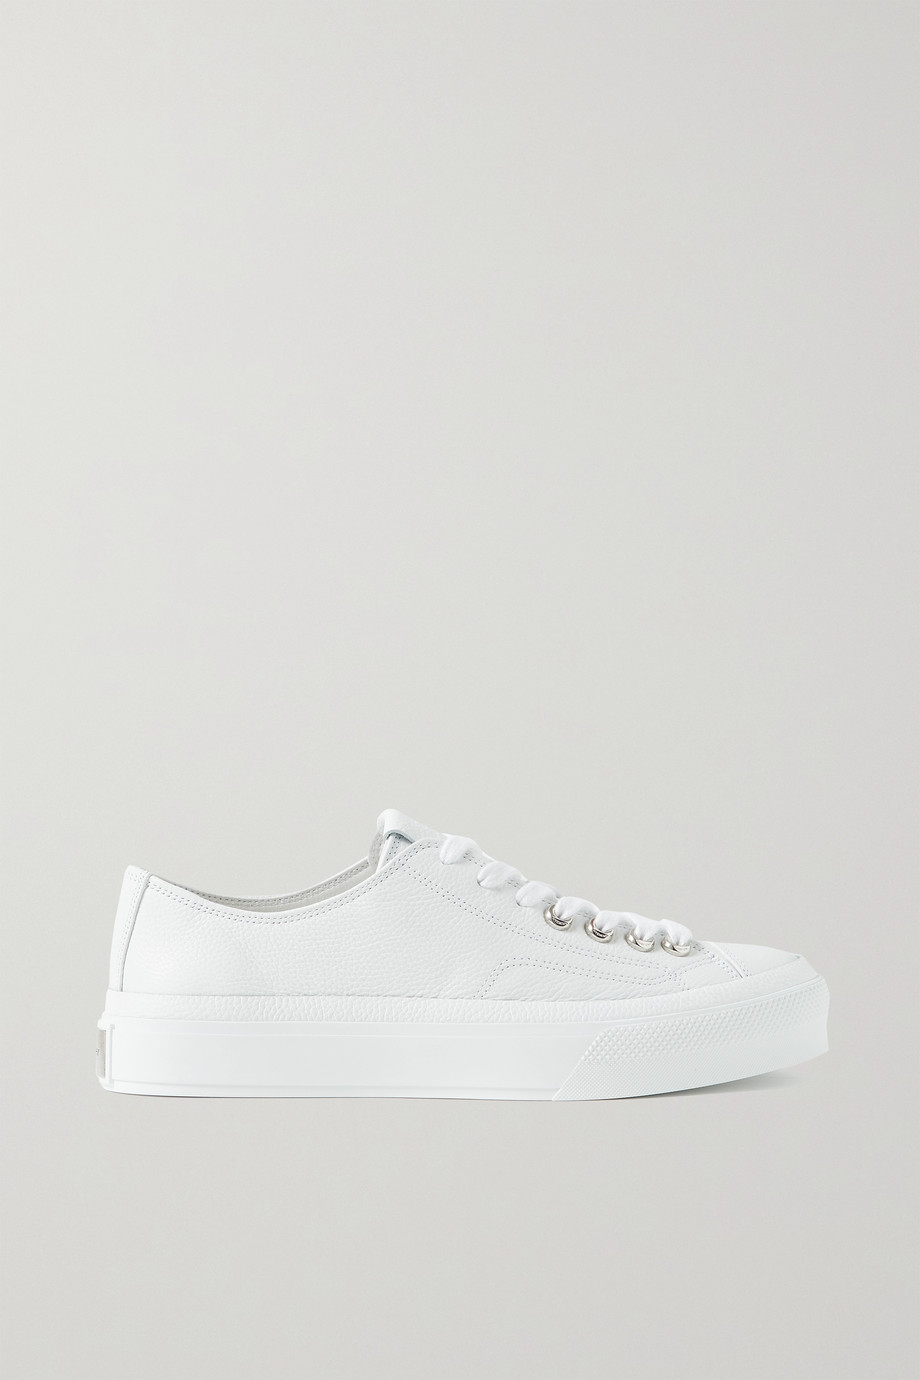 GIVENCHY City leather sneakers